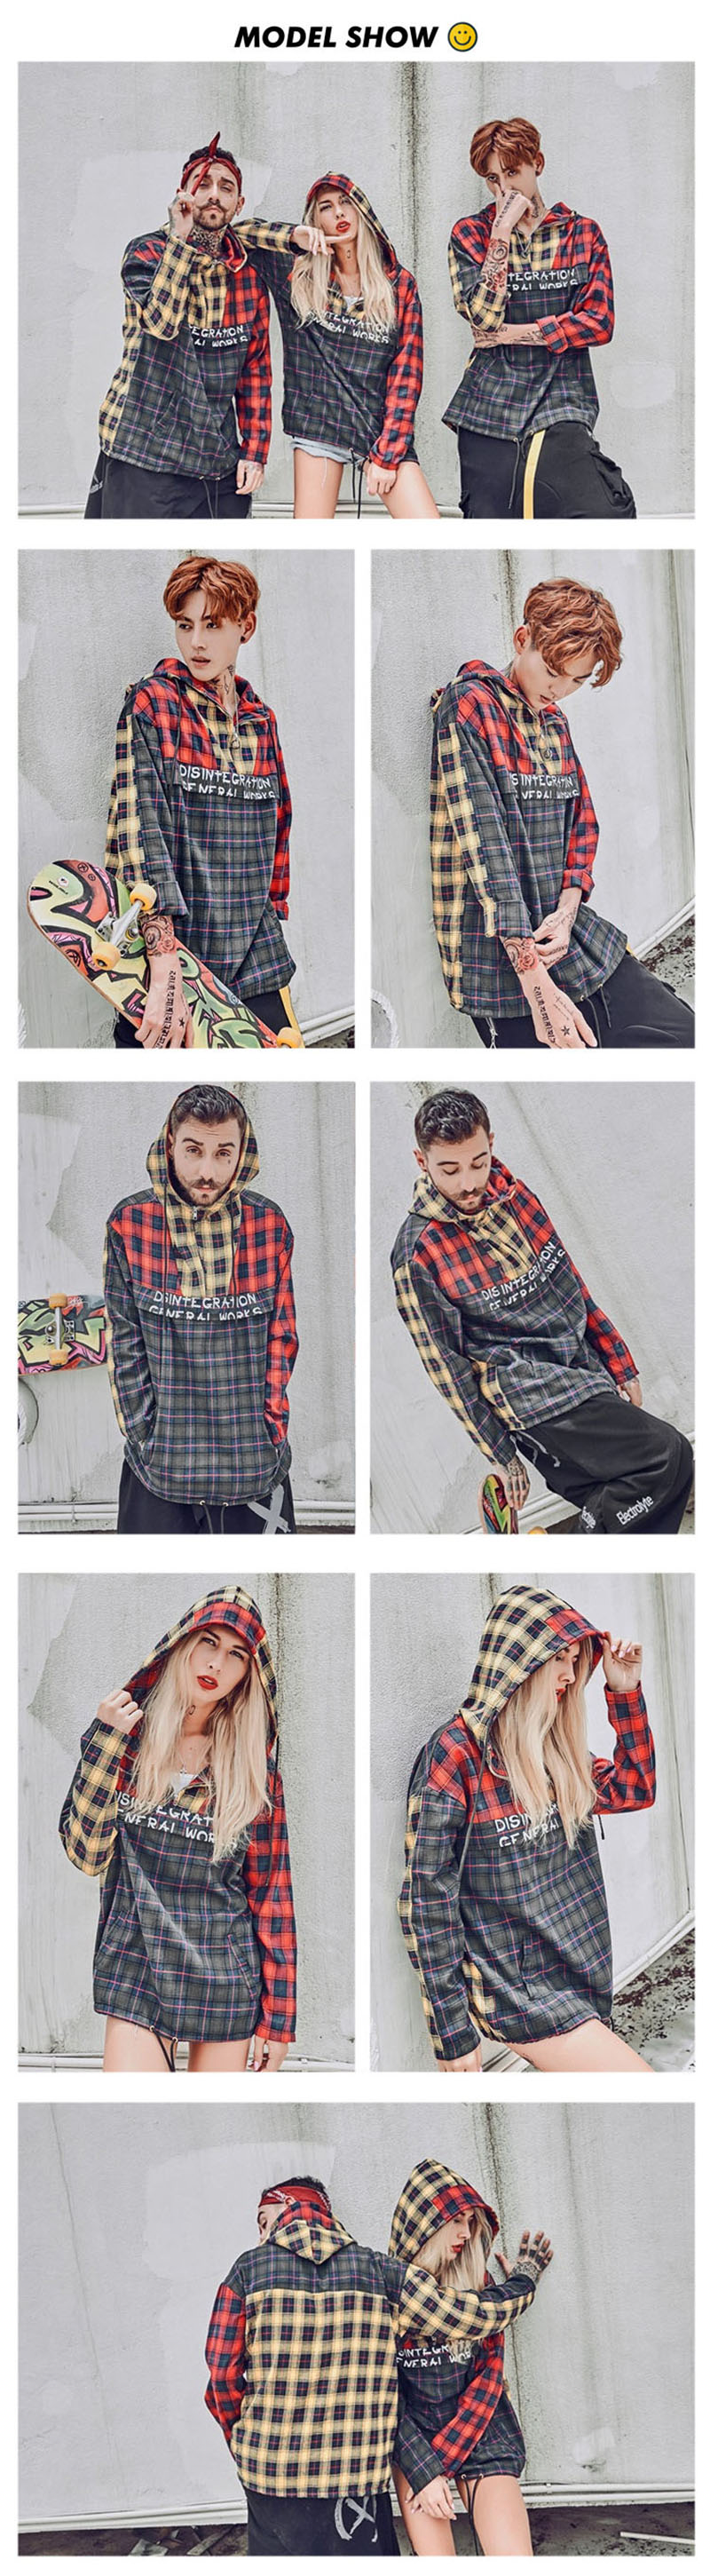 Aolamegs Male Hoodies Plaid Patchwork Thin Sweatshirts Loose Hooded Pullover Streetwear High Street Hip Hop Fashion Autumn Brand